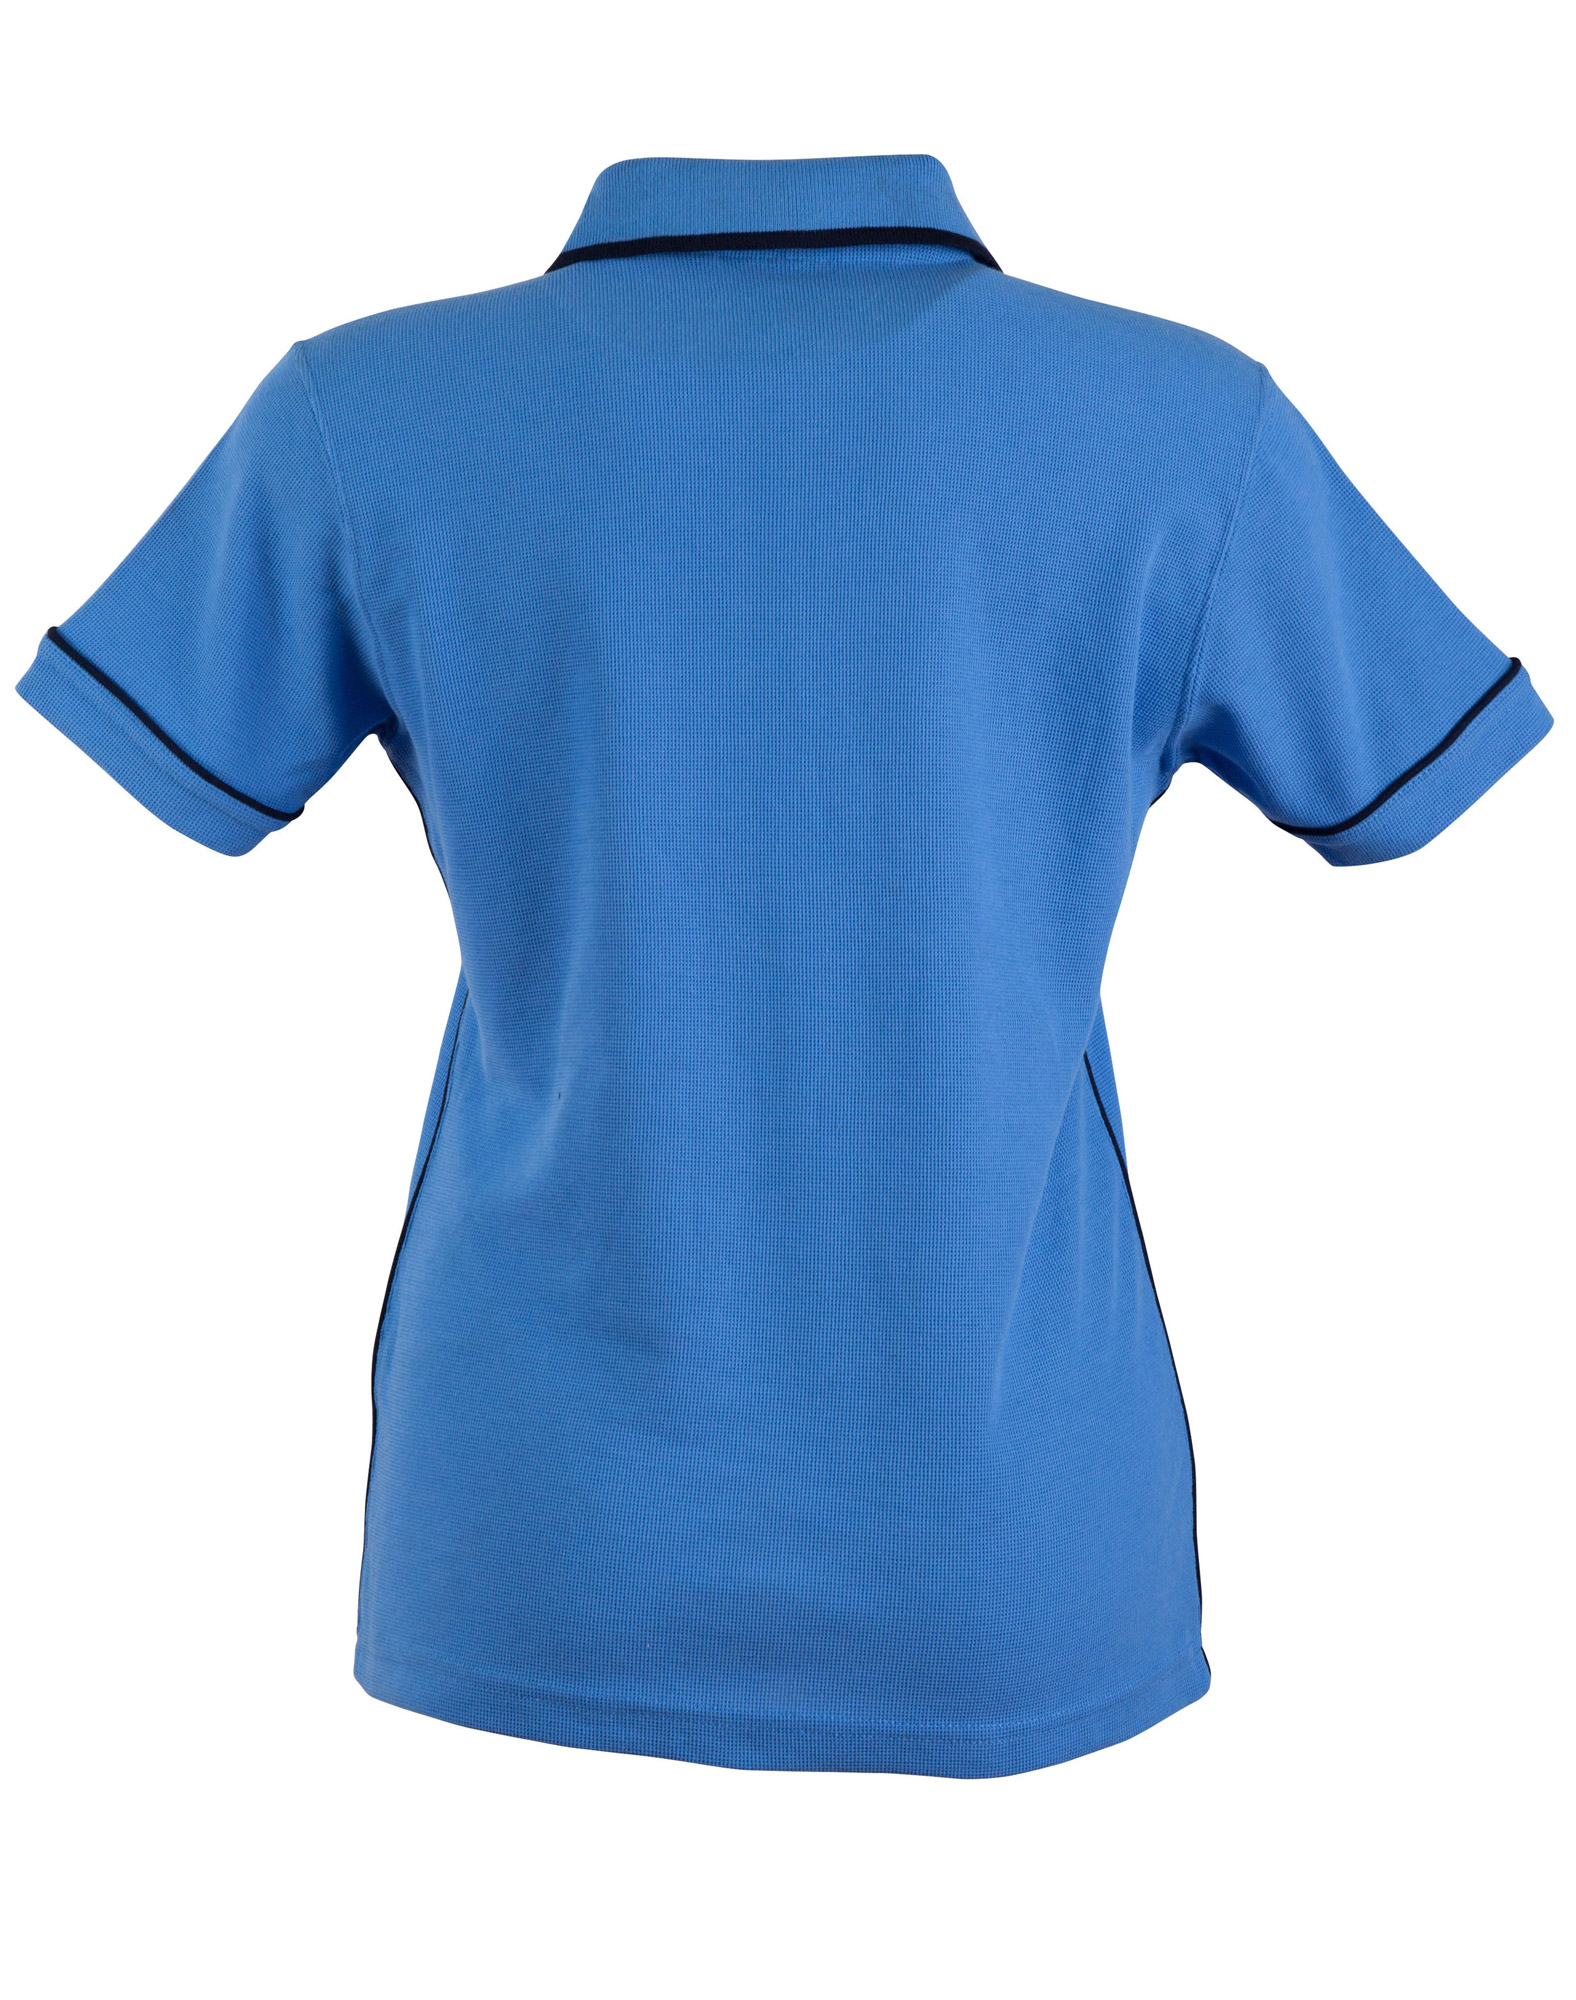 https://s3-ap-southeast-1.amazonaws.com/ws-imgs/POLOSHIRTS/PS17_Skyblue.Navy_back_l.jpg